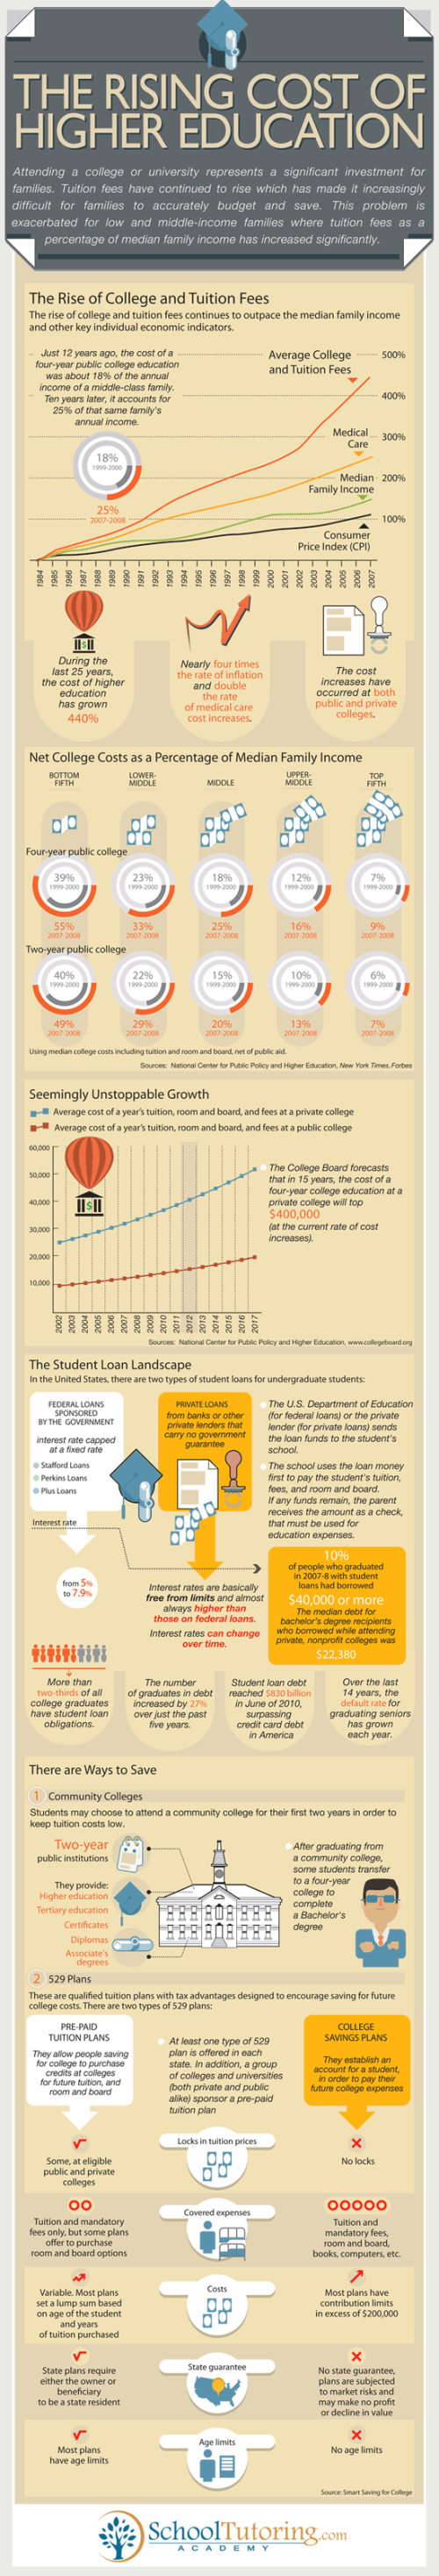 The Rising Cost of Higher Education infographic